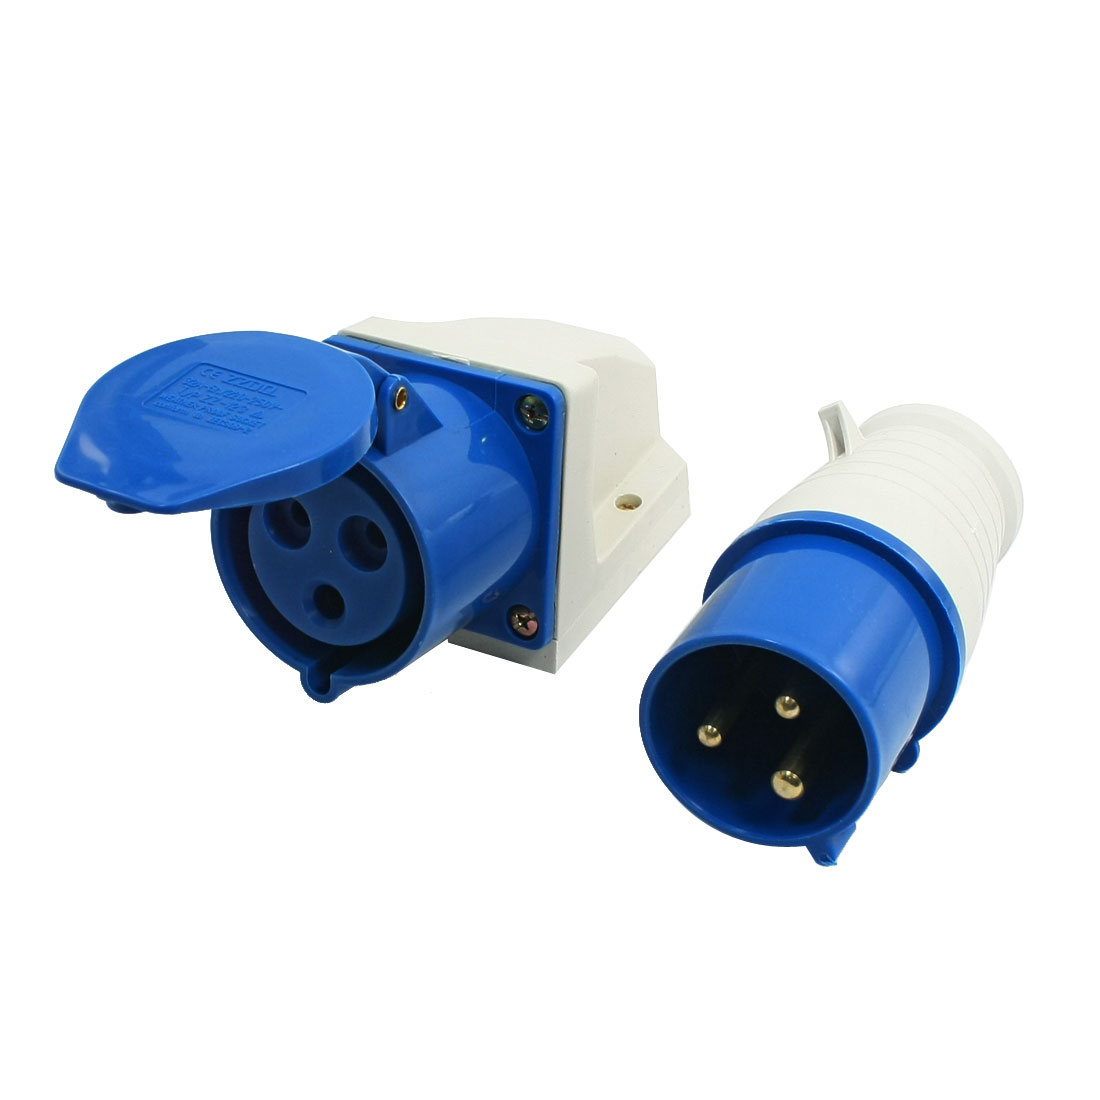 2P+E 16A 220-250 Volt 3 Pole Connector with Coupler Waterproof Trailing Socket